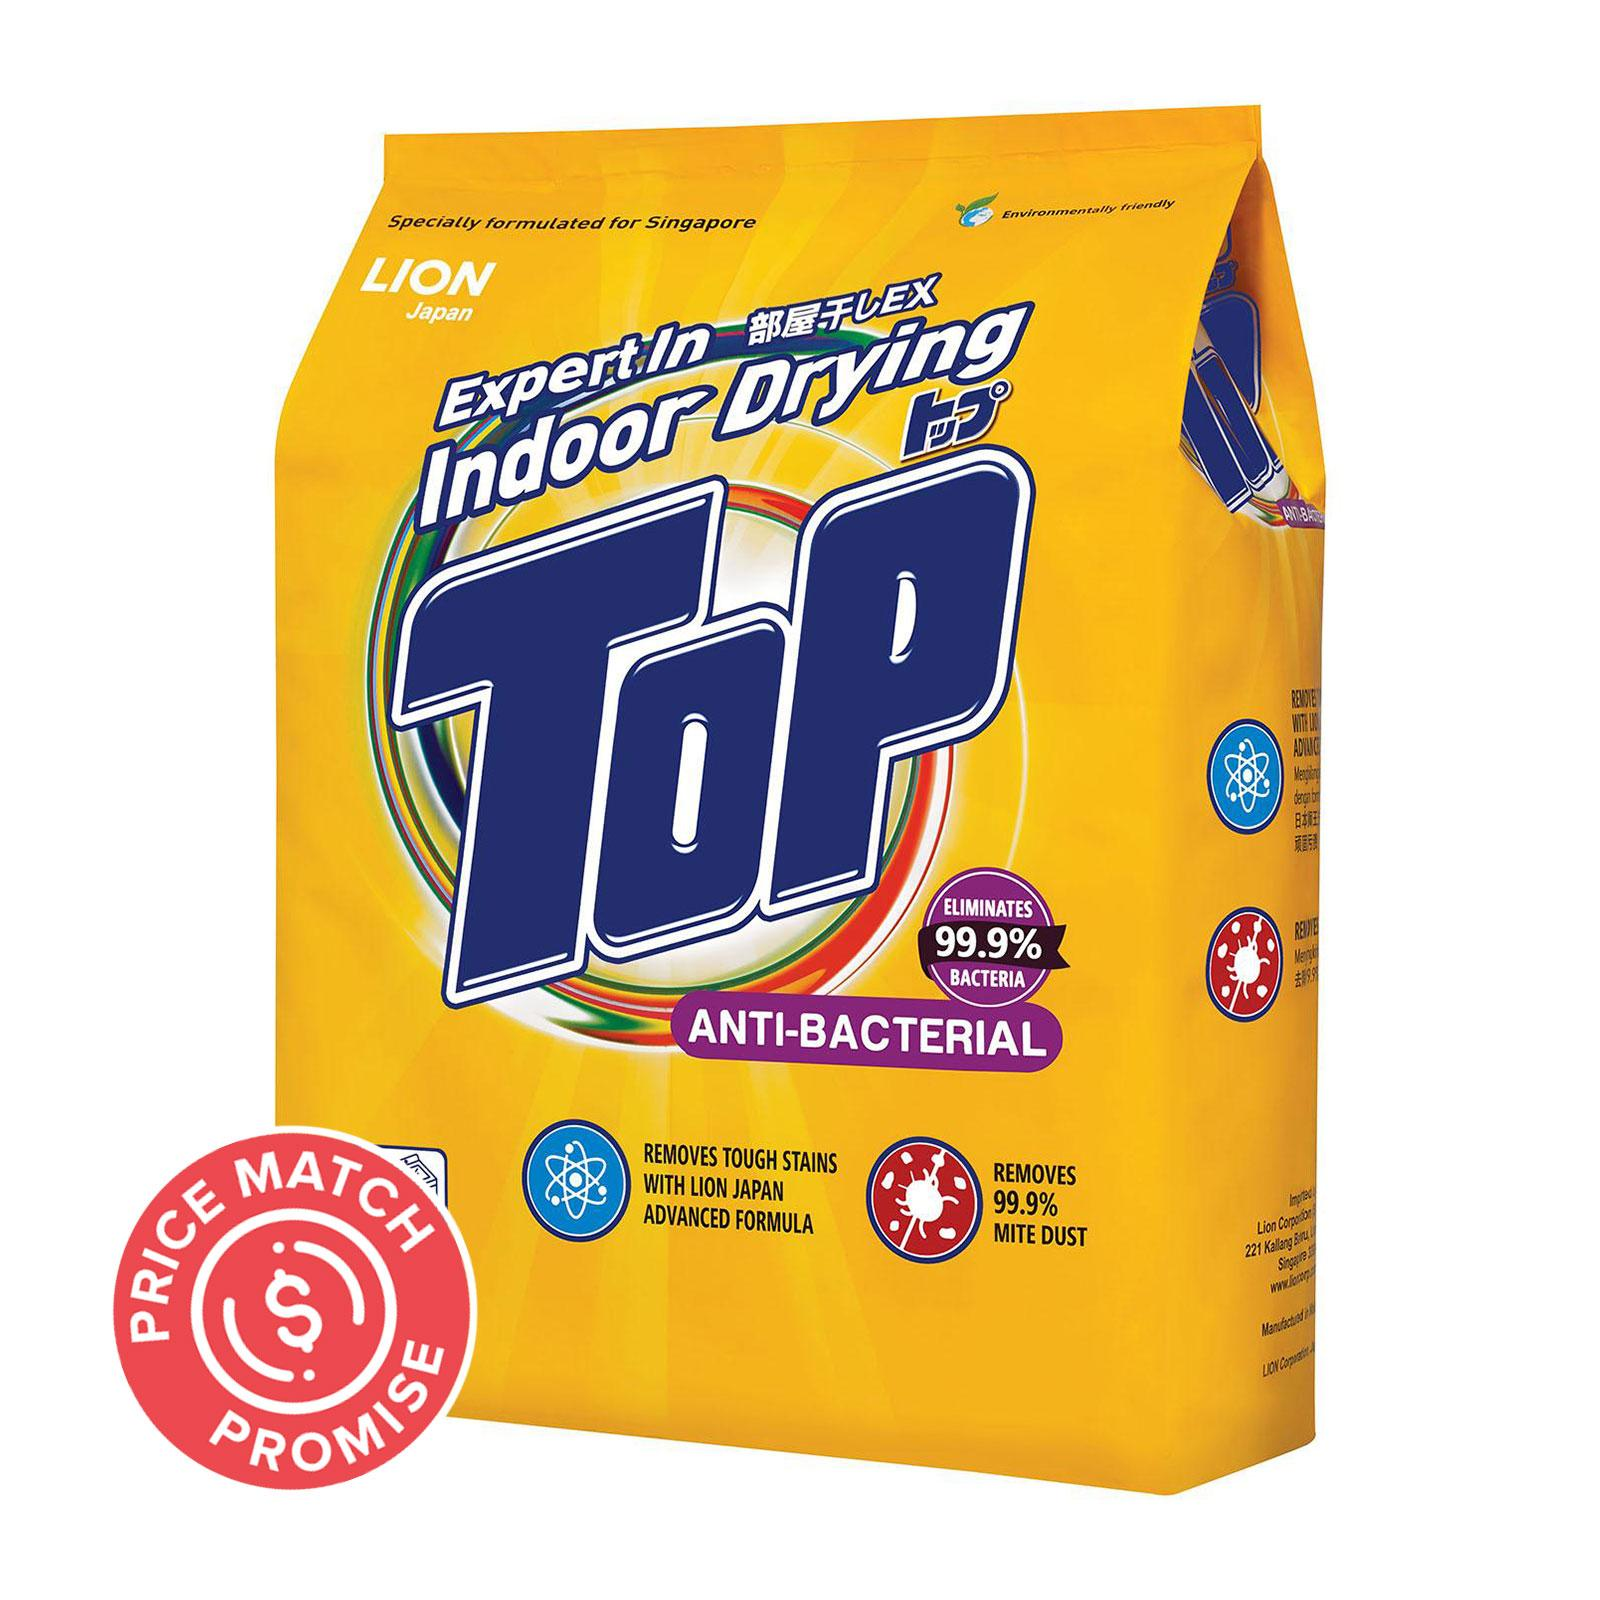 TOP Powder Detergent - Anti-Bacterial 2.5kg